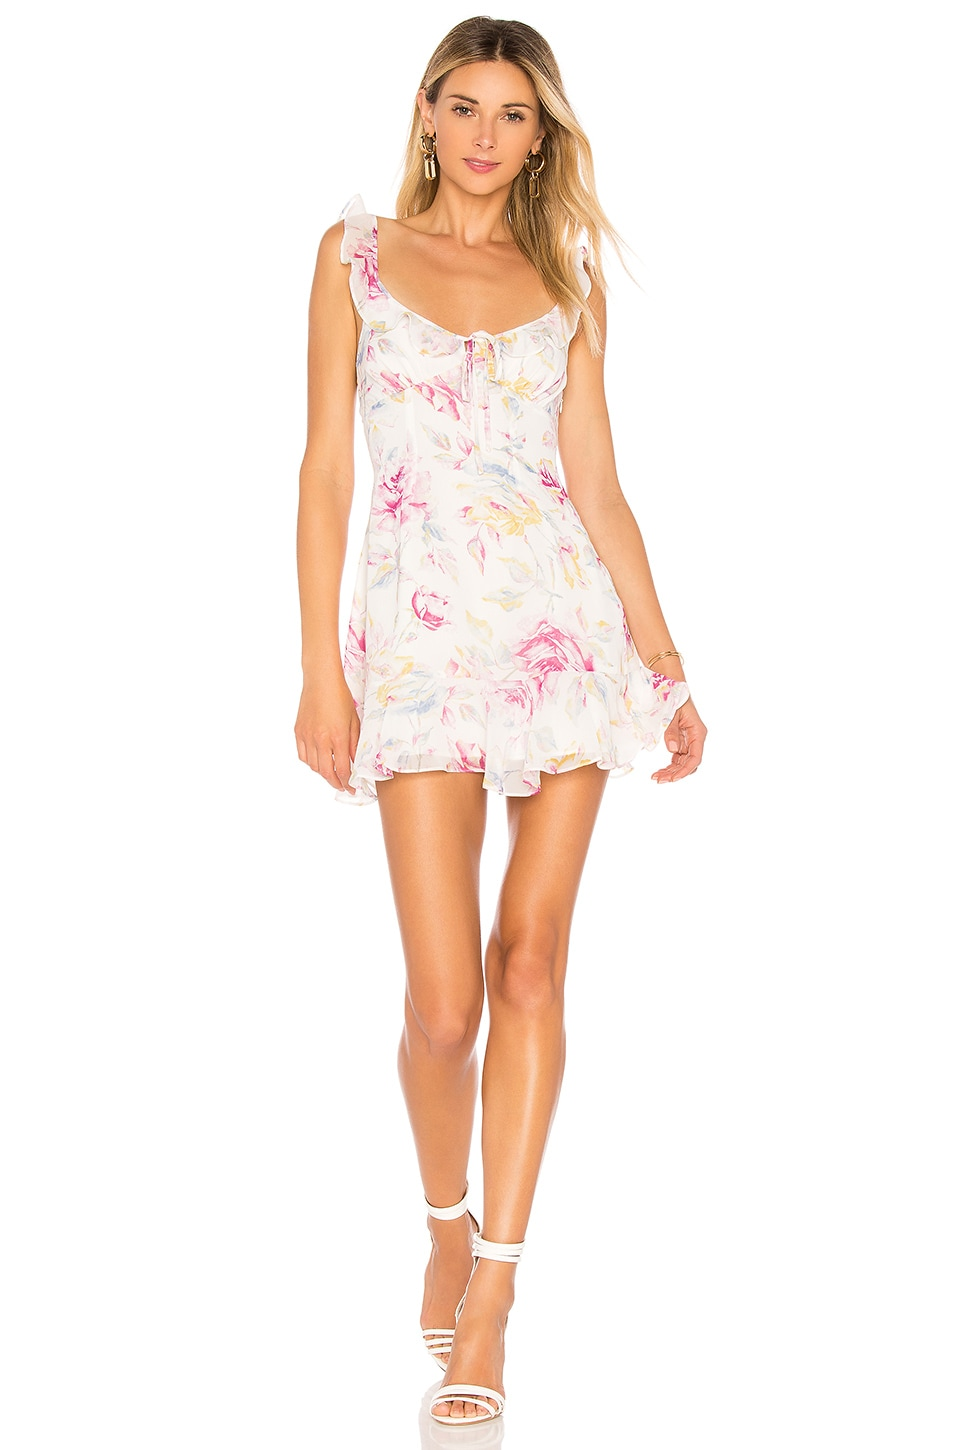 MAJORELLE Sunbeams Dress in Romance